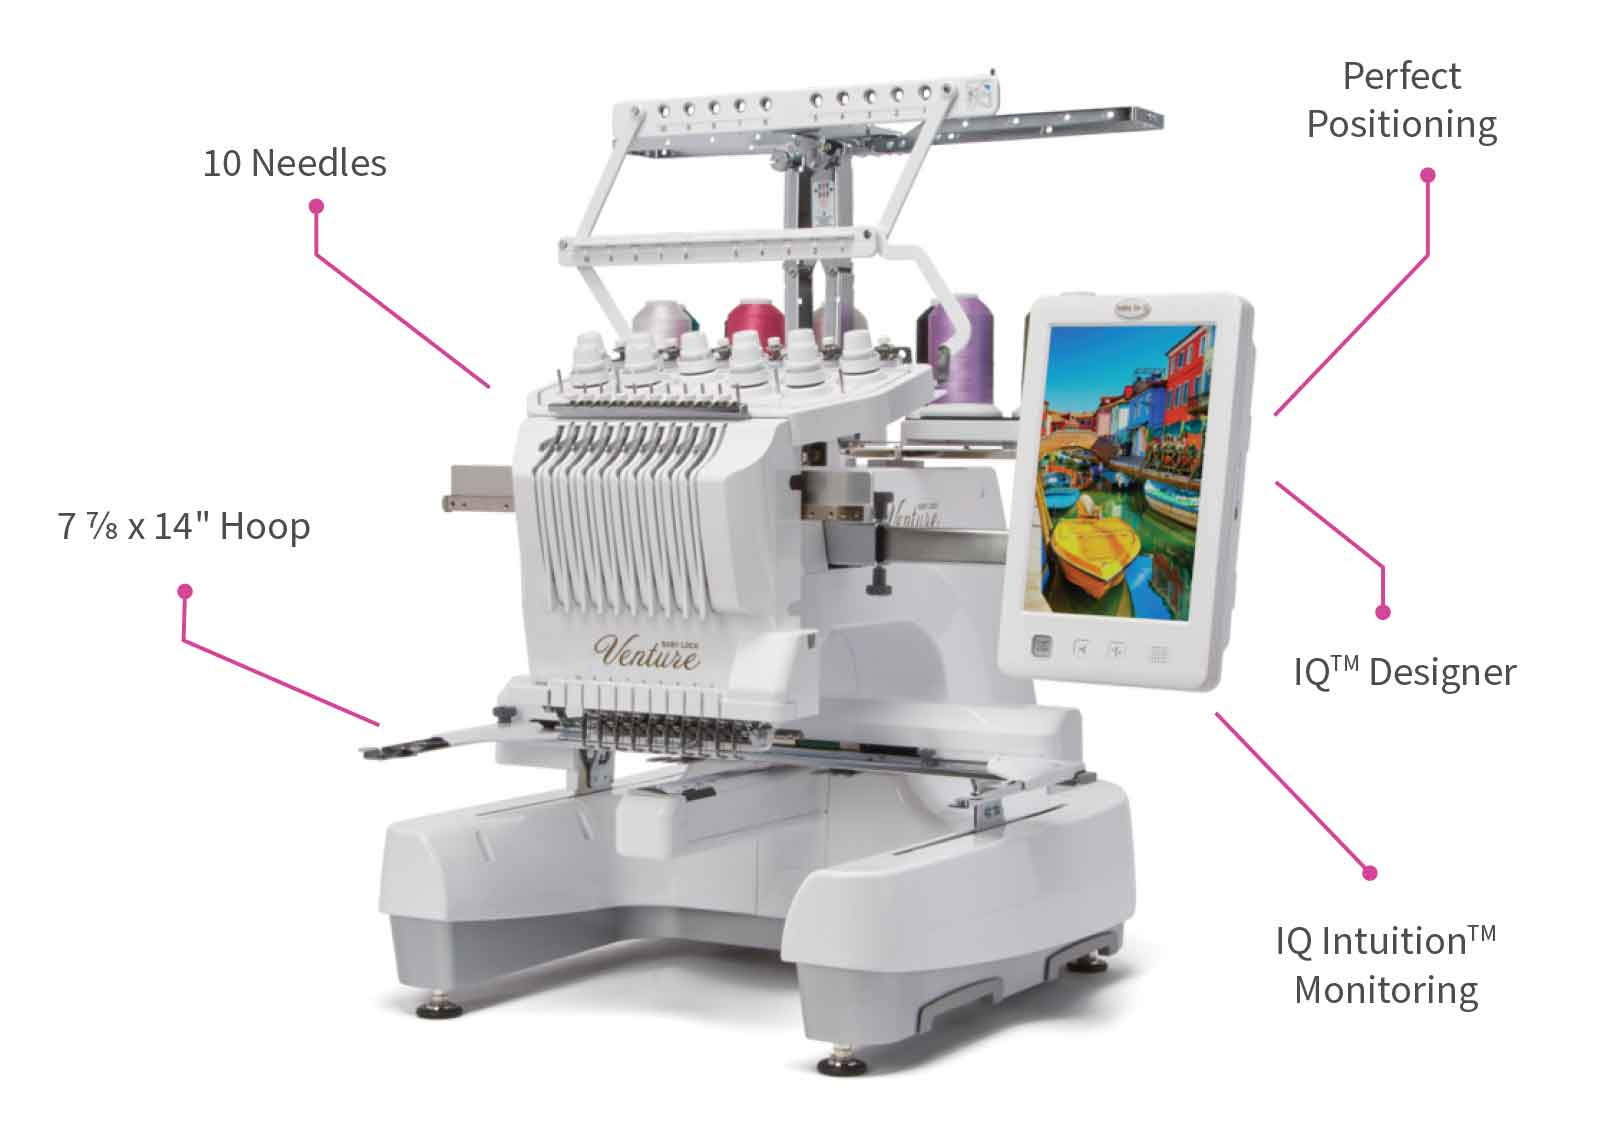 Learn about the features of the Baby Lock Venture Multi-Needle Embroidery Machine